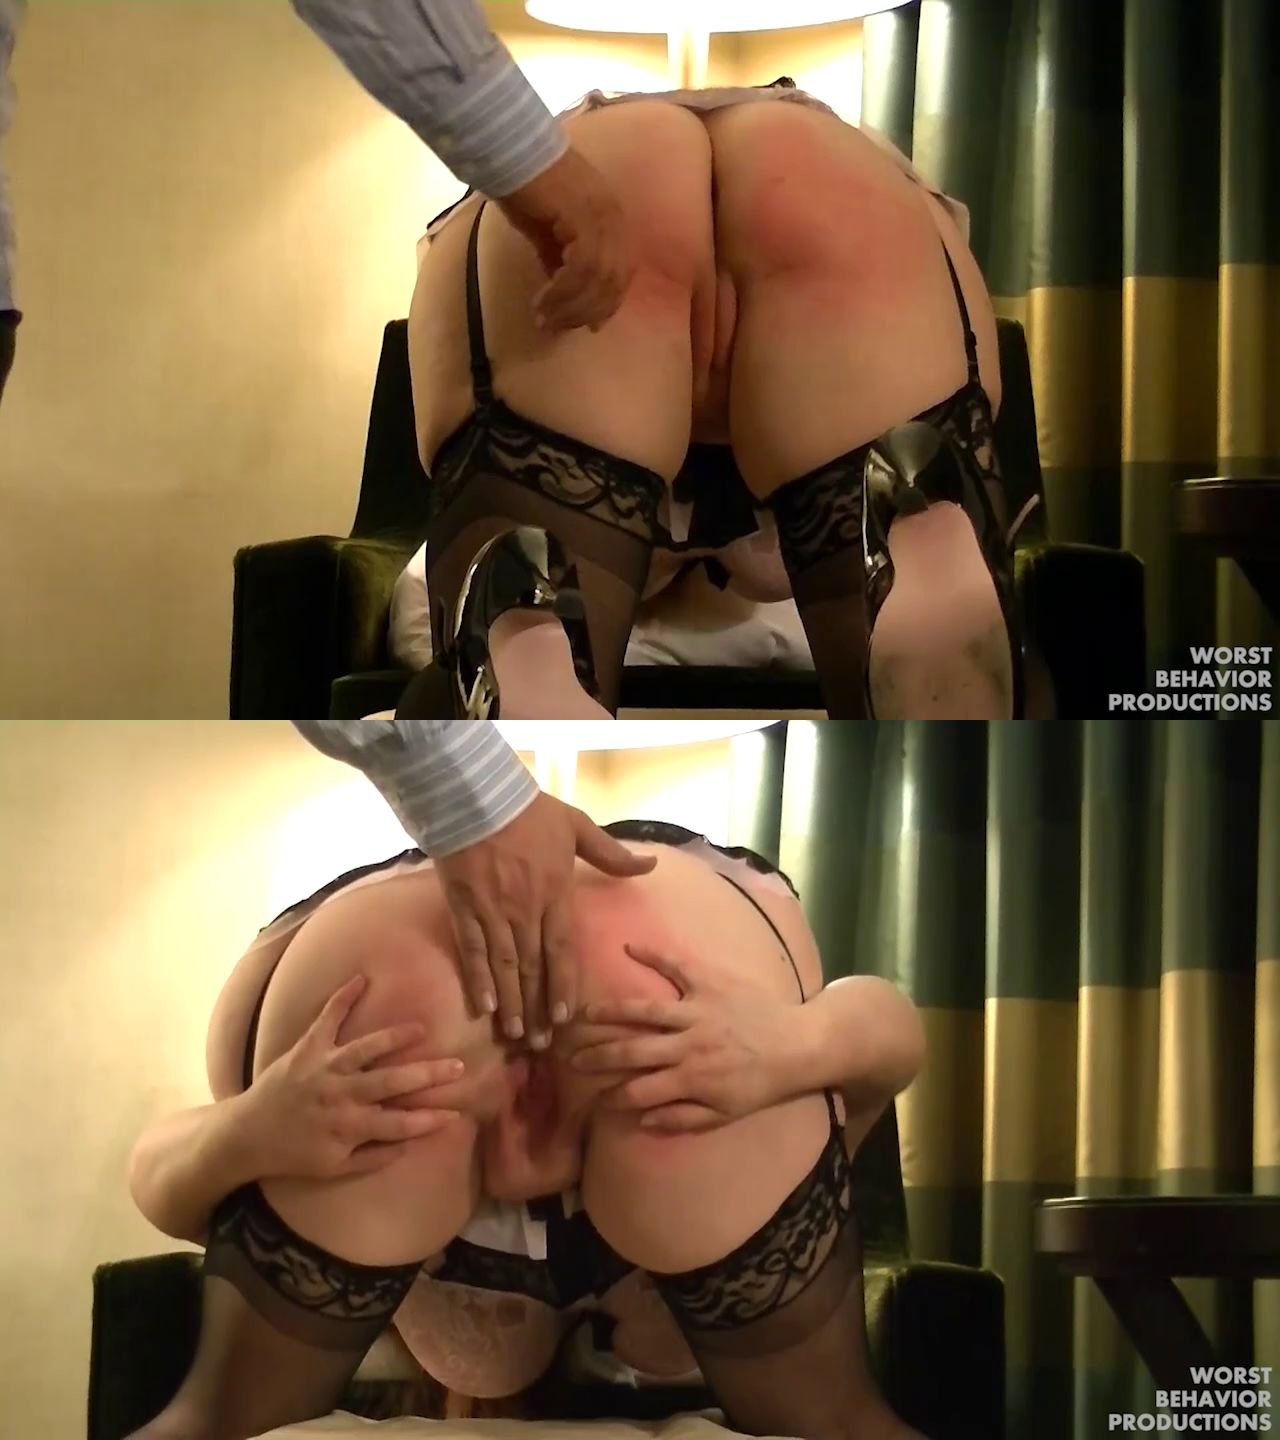 Worst Behavior Productions – MP4/HD – Red, Mr. Smith – Red Is Spanked Paddled And Penalty Swats